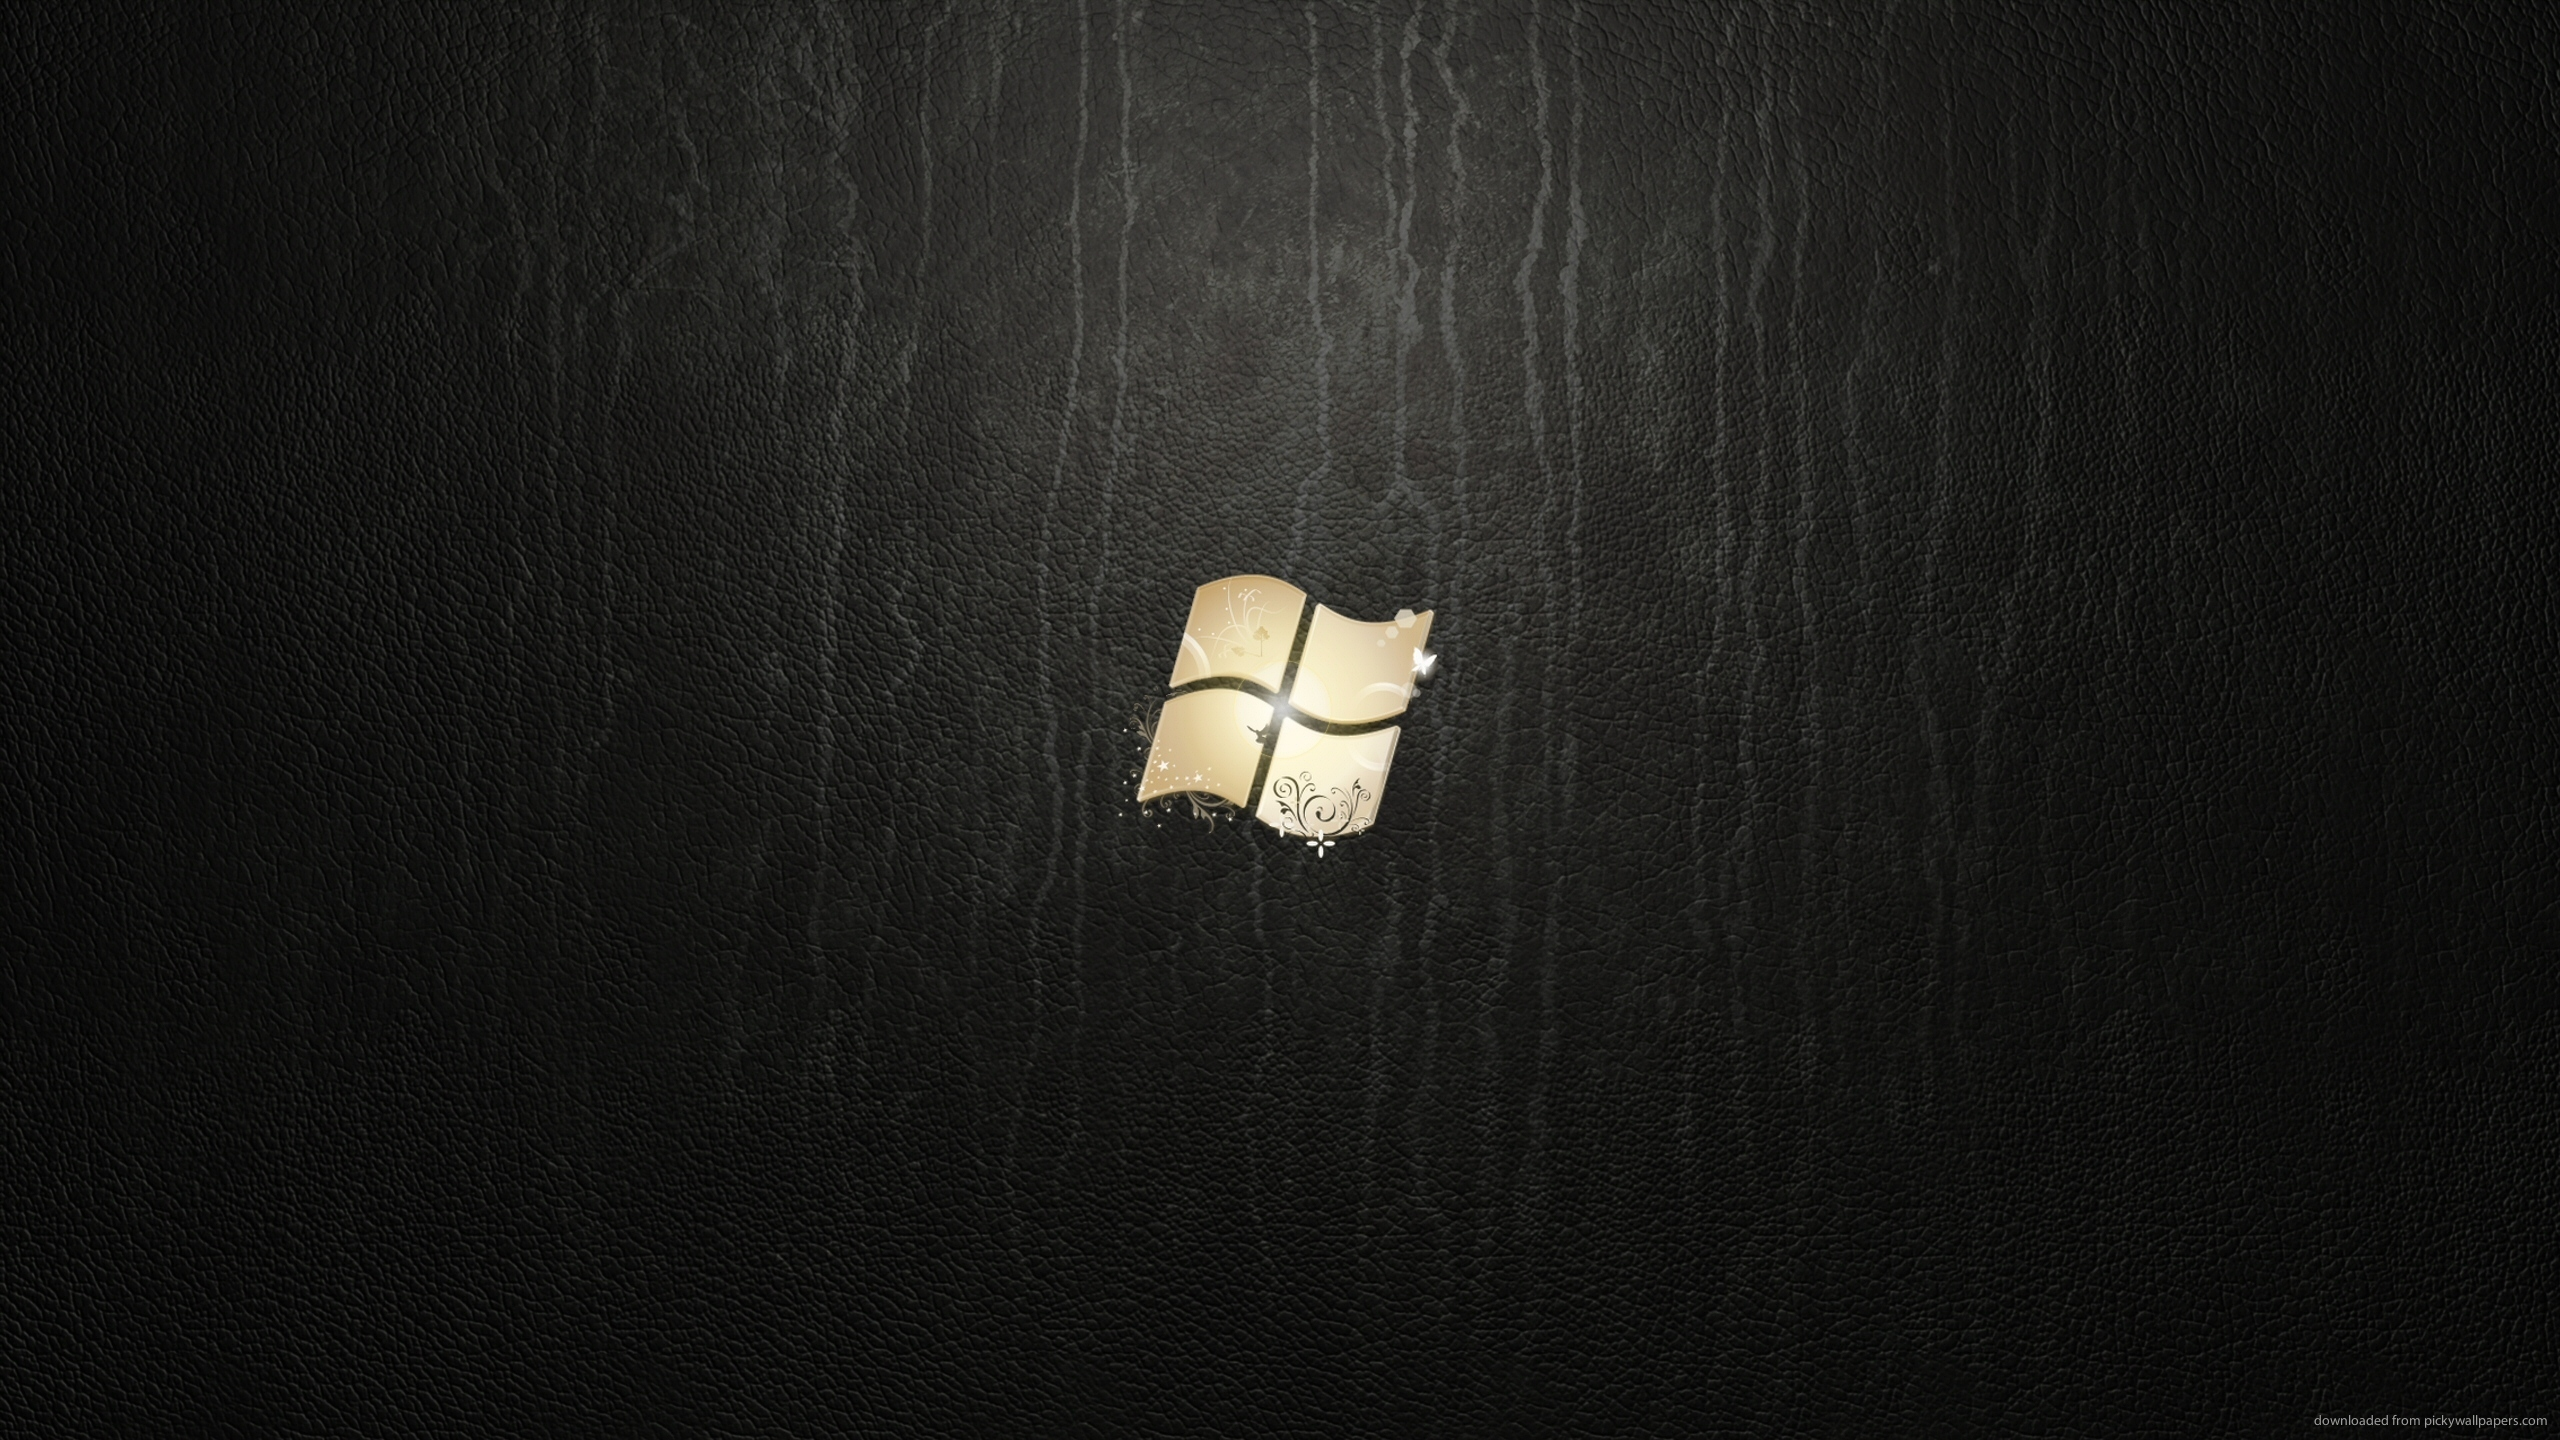 Download 2560x1440 Windows 7 Ultimate Leather Wallpaper 2560x1440